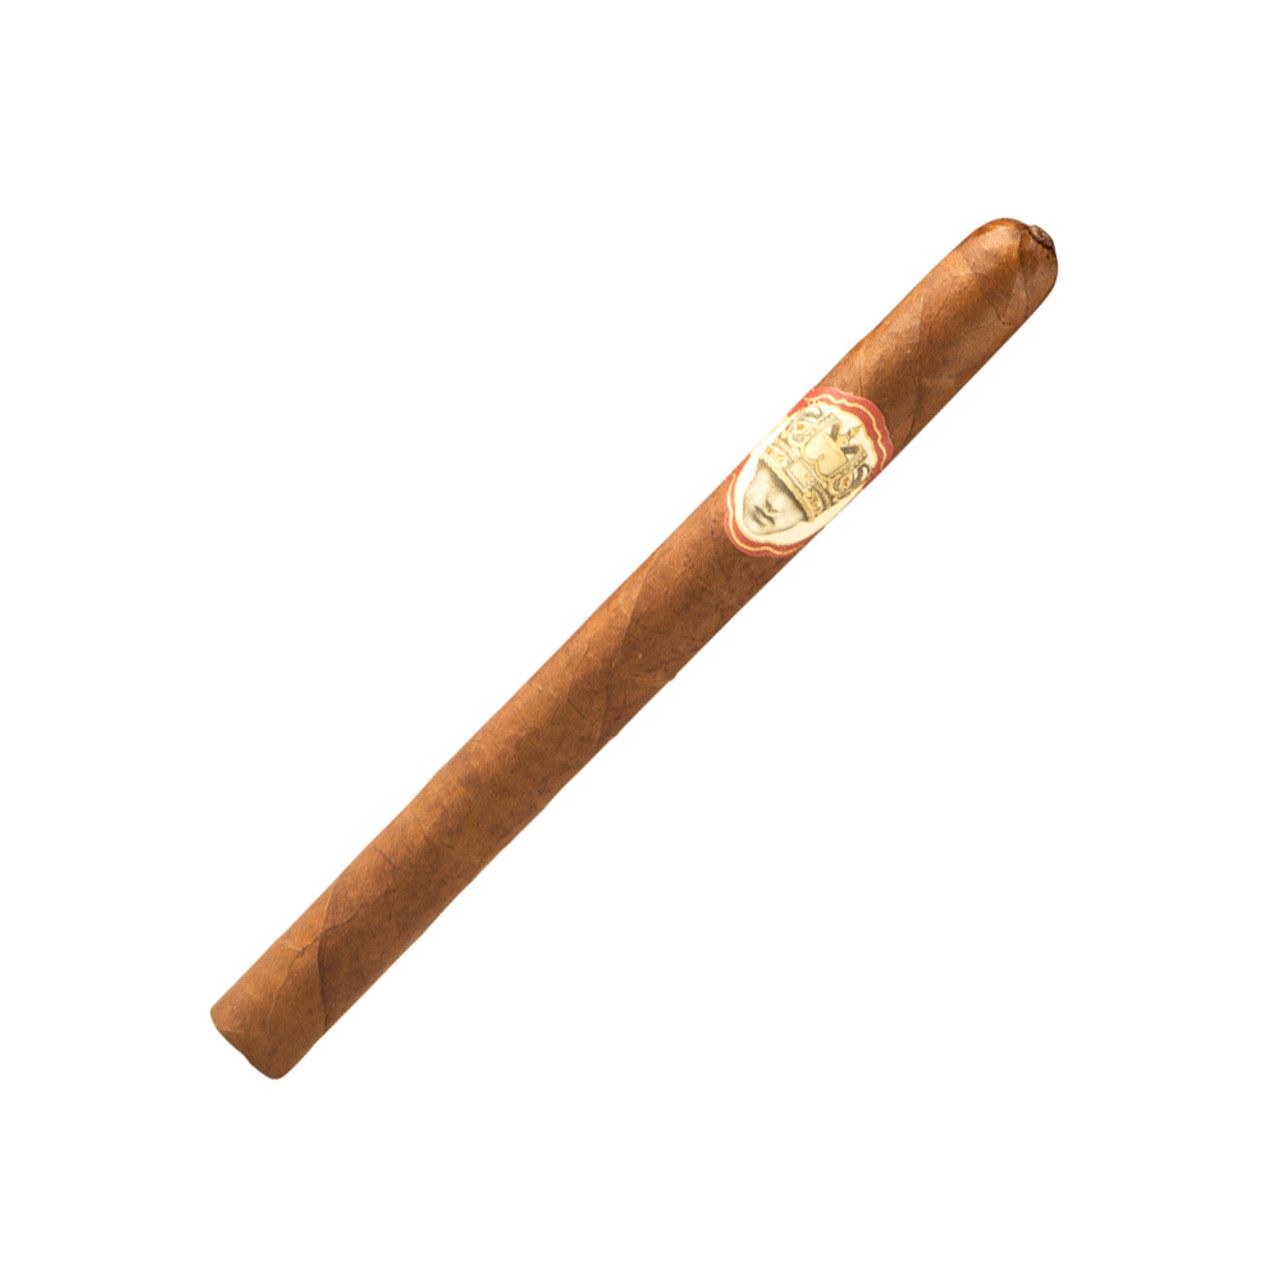 Caldwell Long Live The King My Style Is Jalapeno Cigars - 7 x 40 (Box of 24)